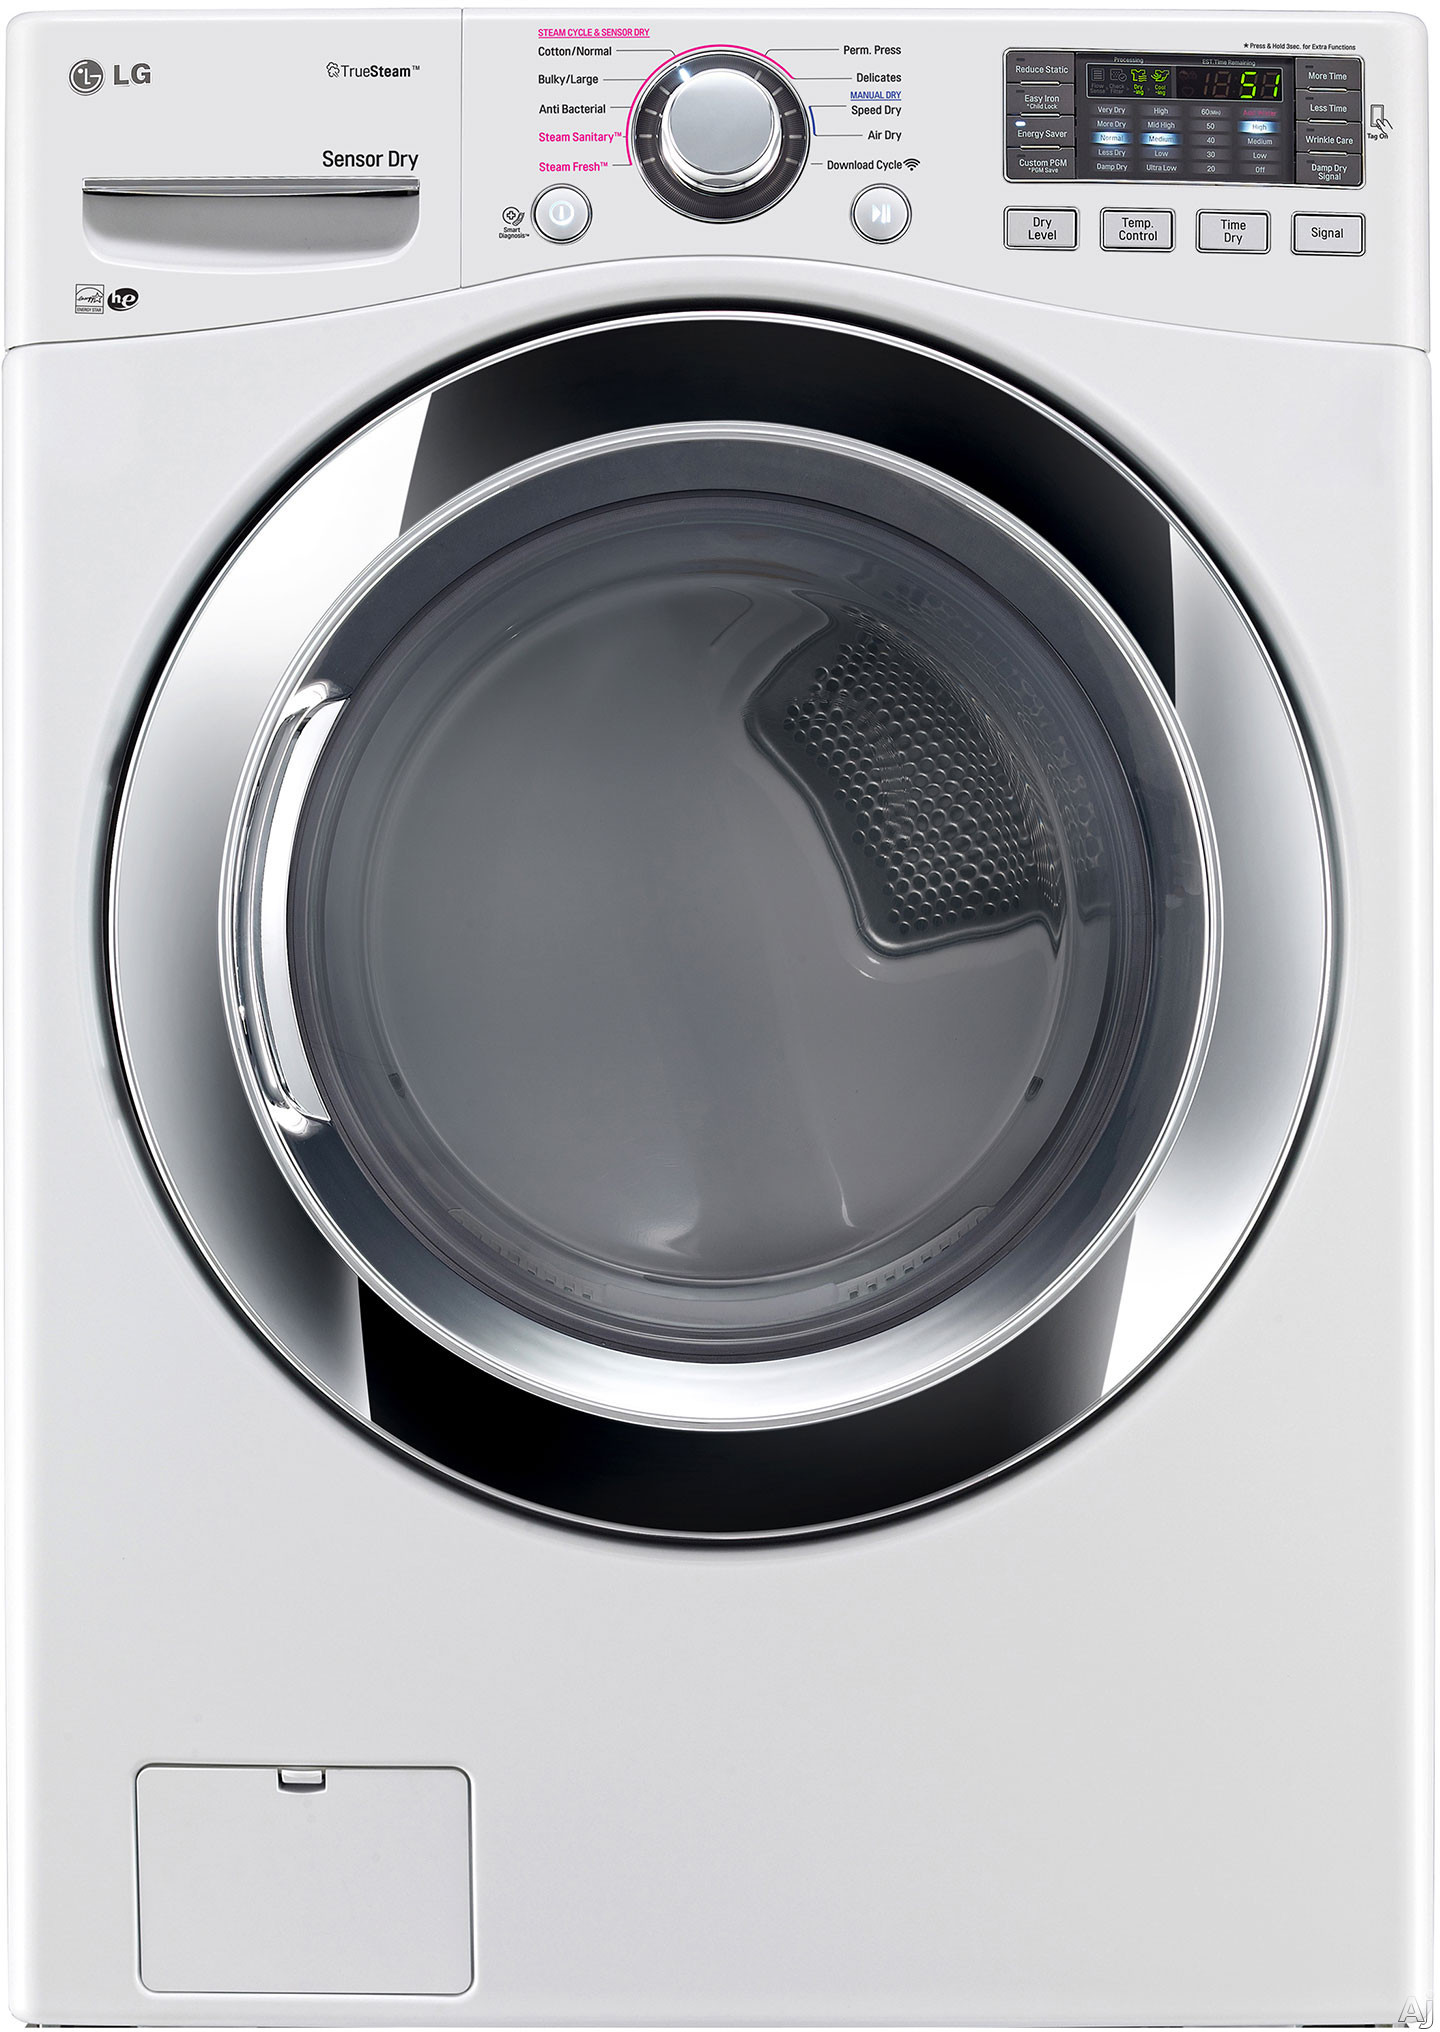 LG DLGX3371W 27 Inch 7.4 cu. ft. Gas Dryer with Steam Technology Anti Bacterial Cycle Wrinkle Care EasyIron Option ReduceStatic Option Speed Dry 10 Drying Programs 5 Temperature Settings Smart Diagnos